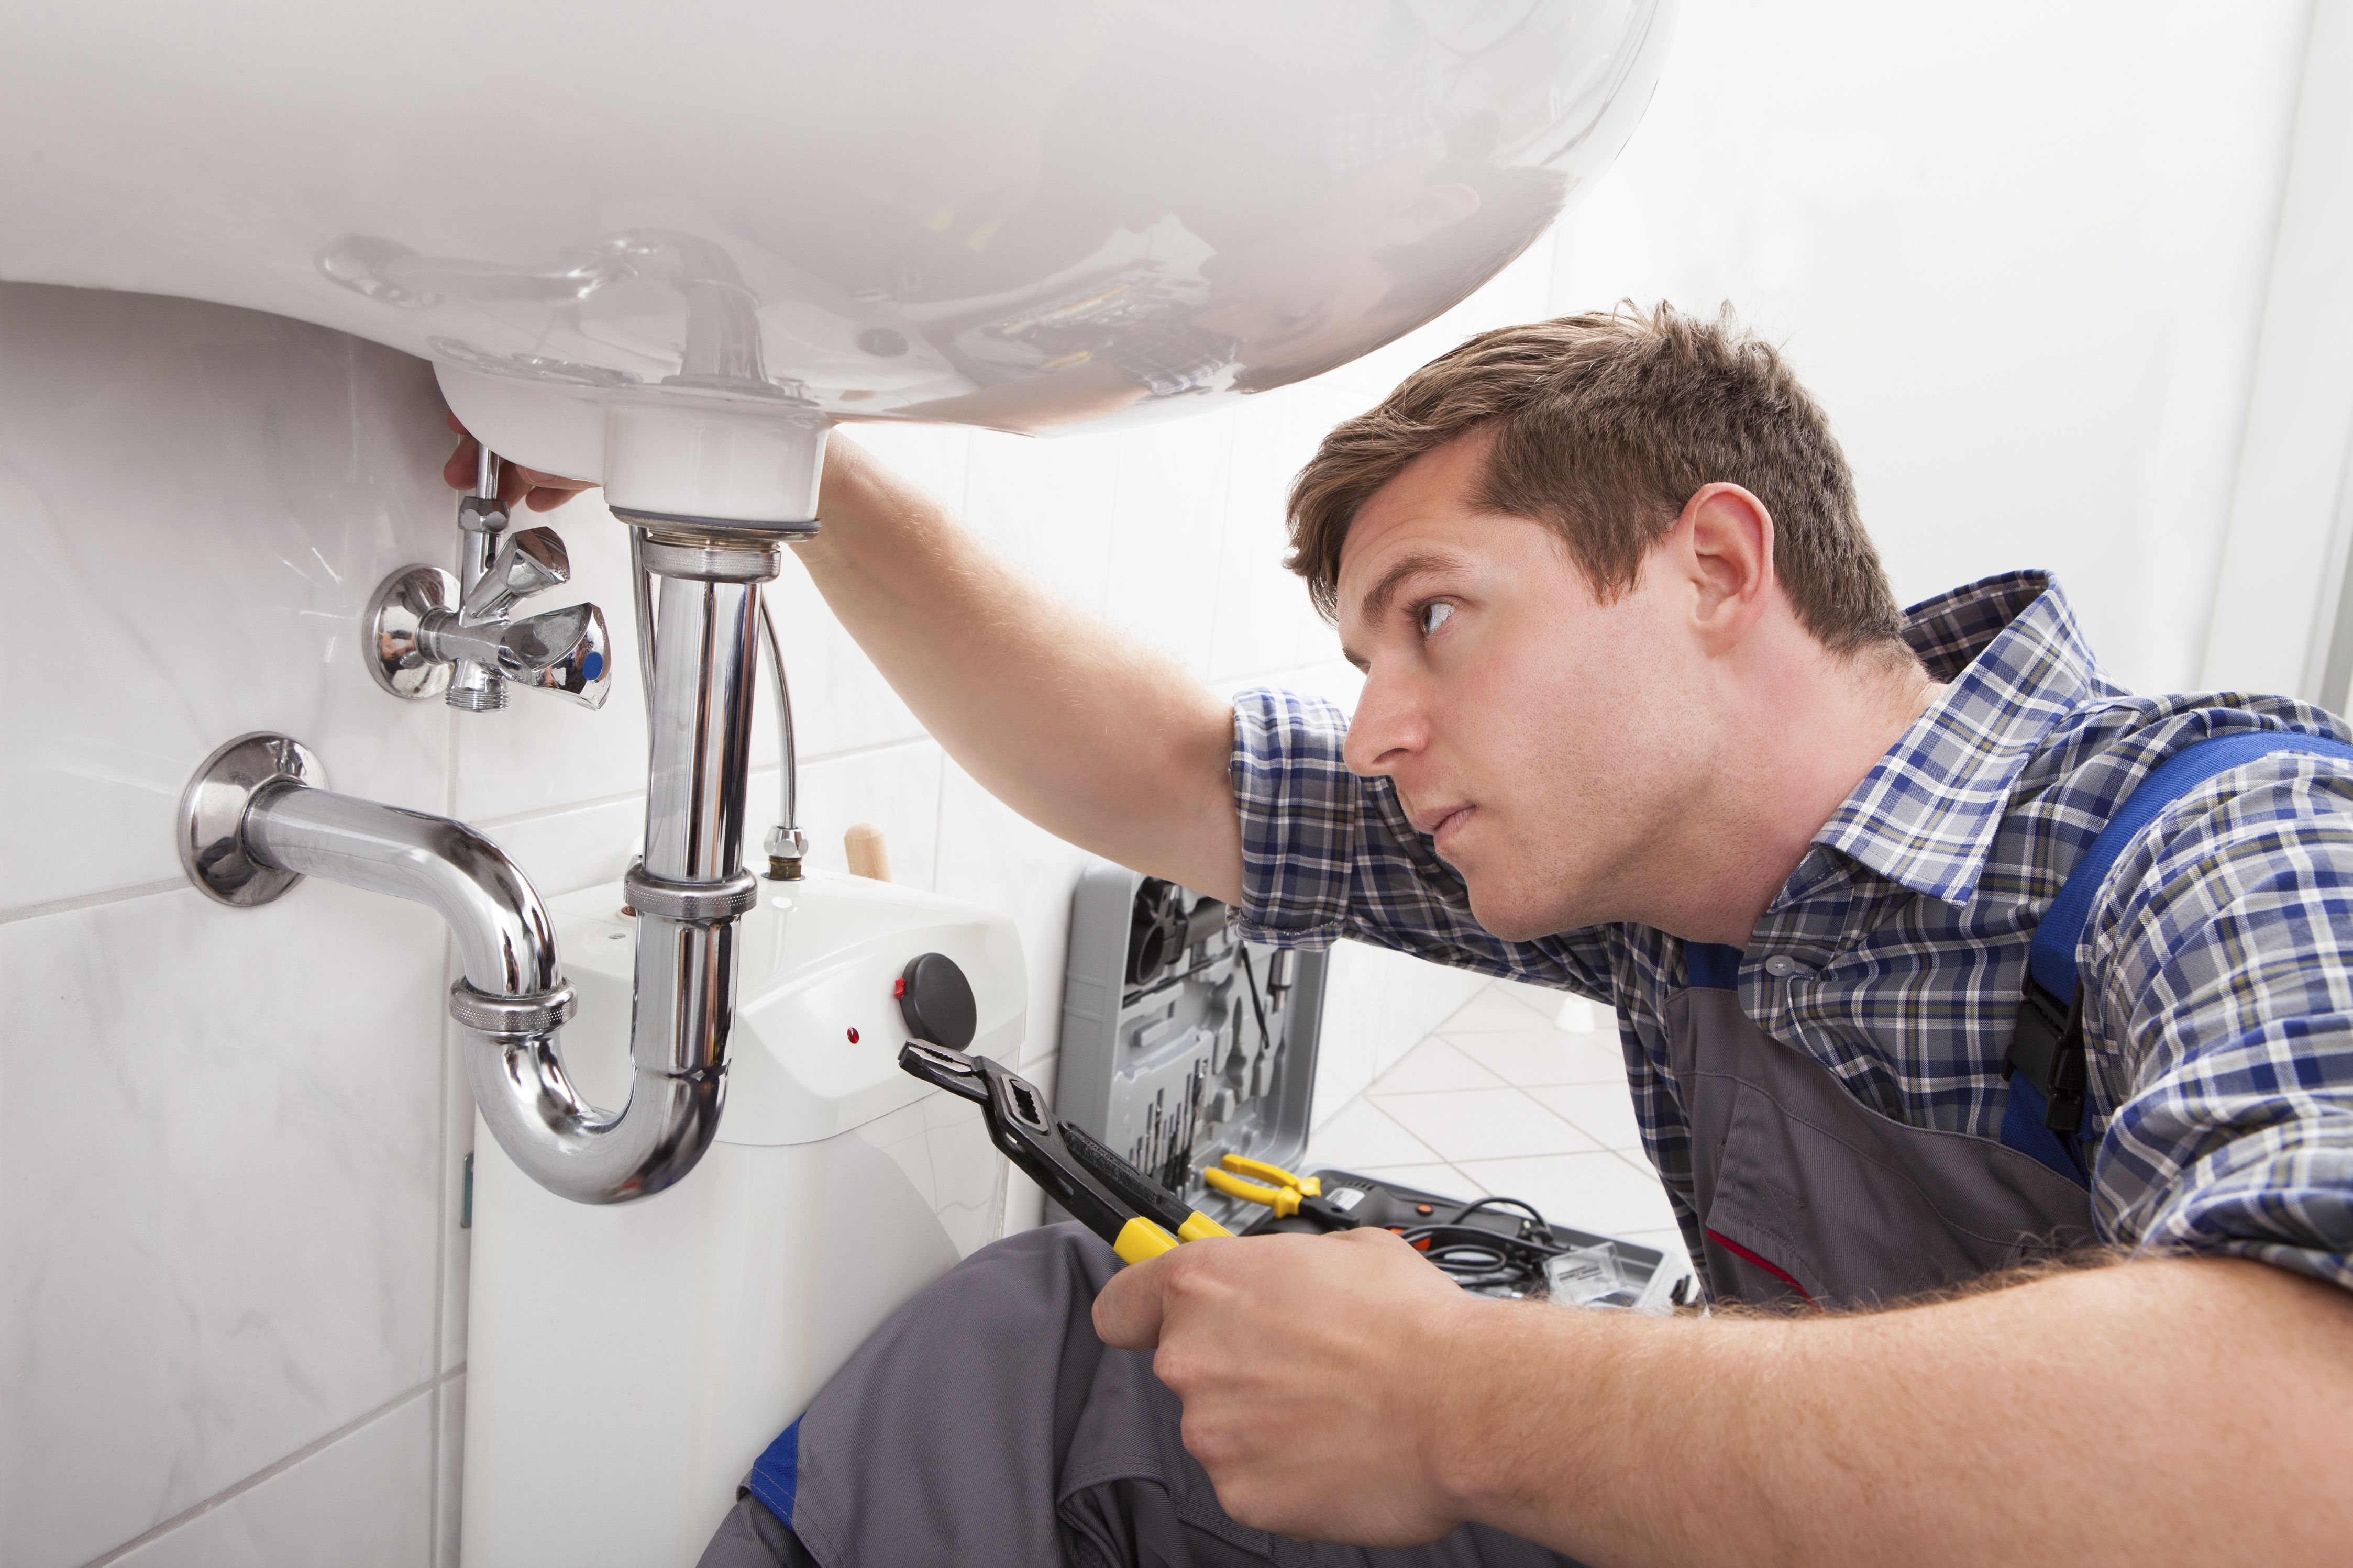 Do you really need a professional plumber or can you diy